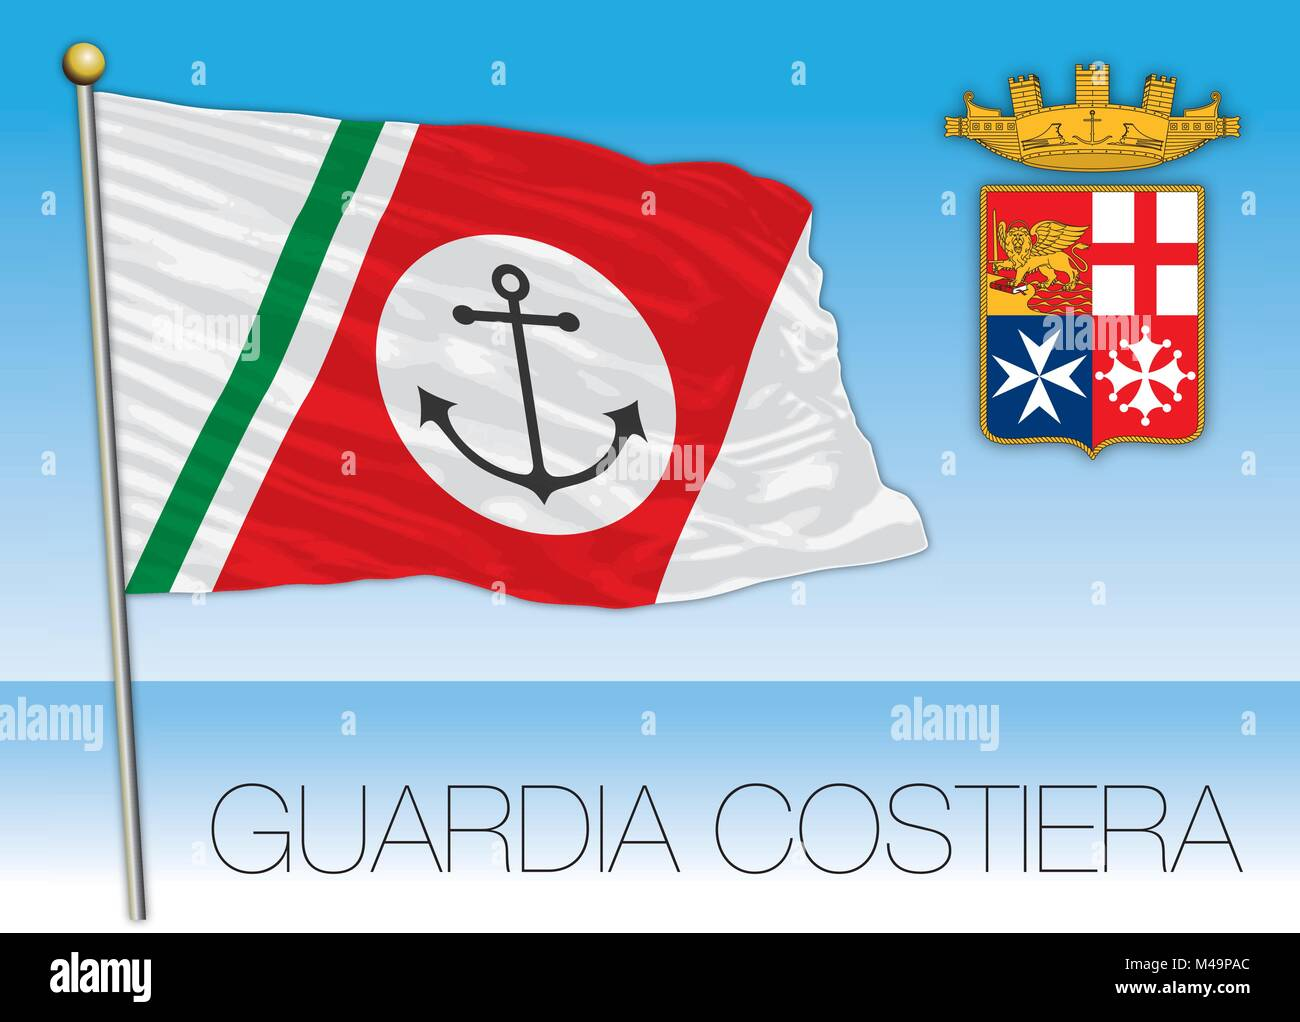 Italian Coast Guard, Guardia Costiera flag, Italy - Stock Vector